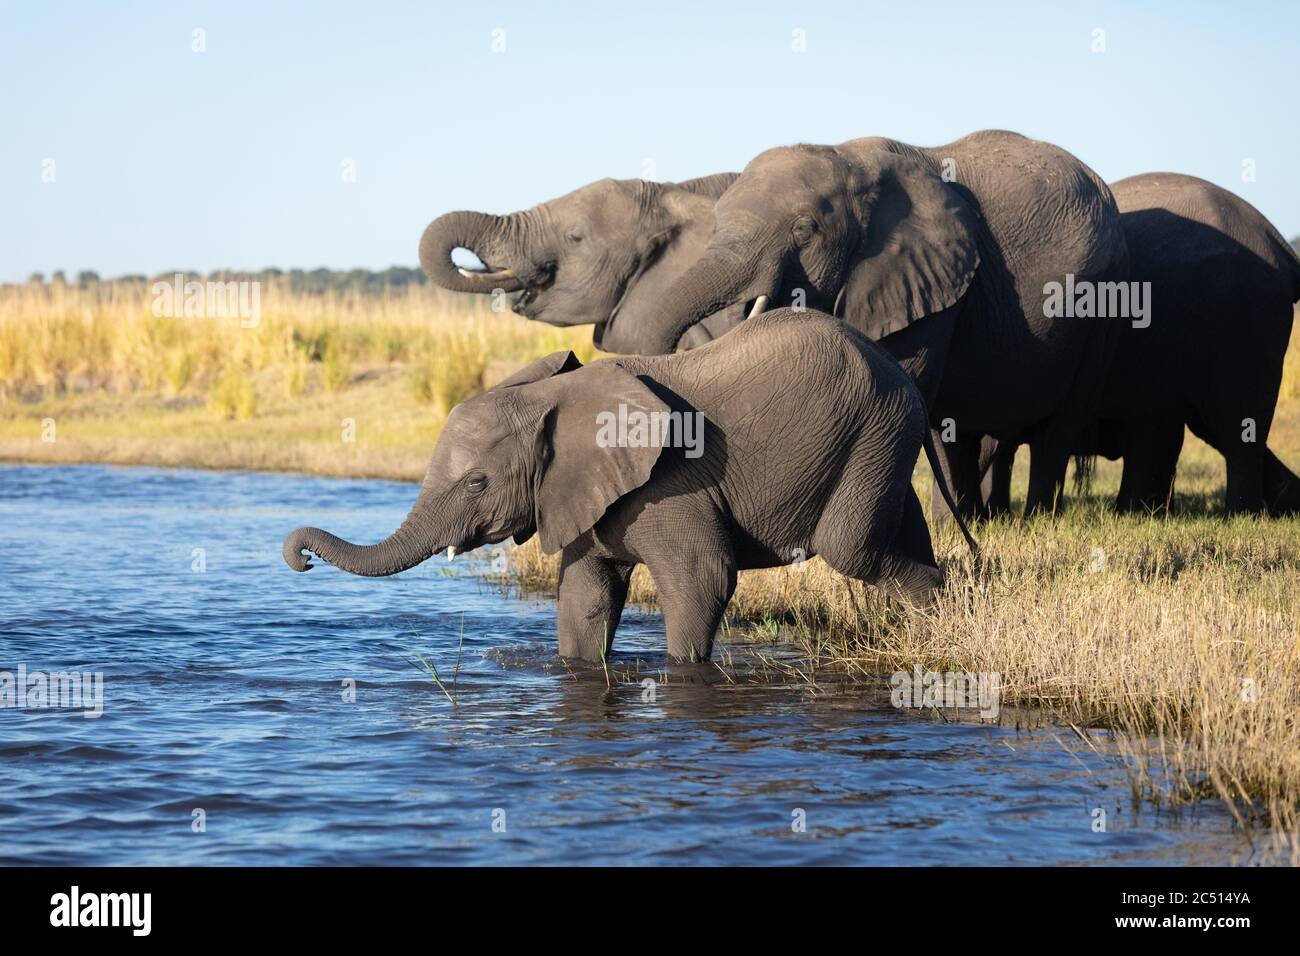 Elephant herd standing at river's edge drinking water in golden afternoon light in Chobe River in Botswana Stock Photo